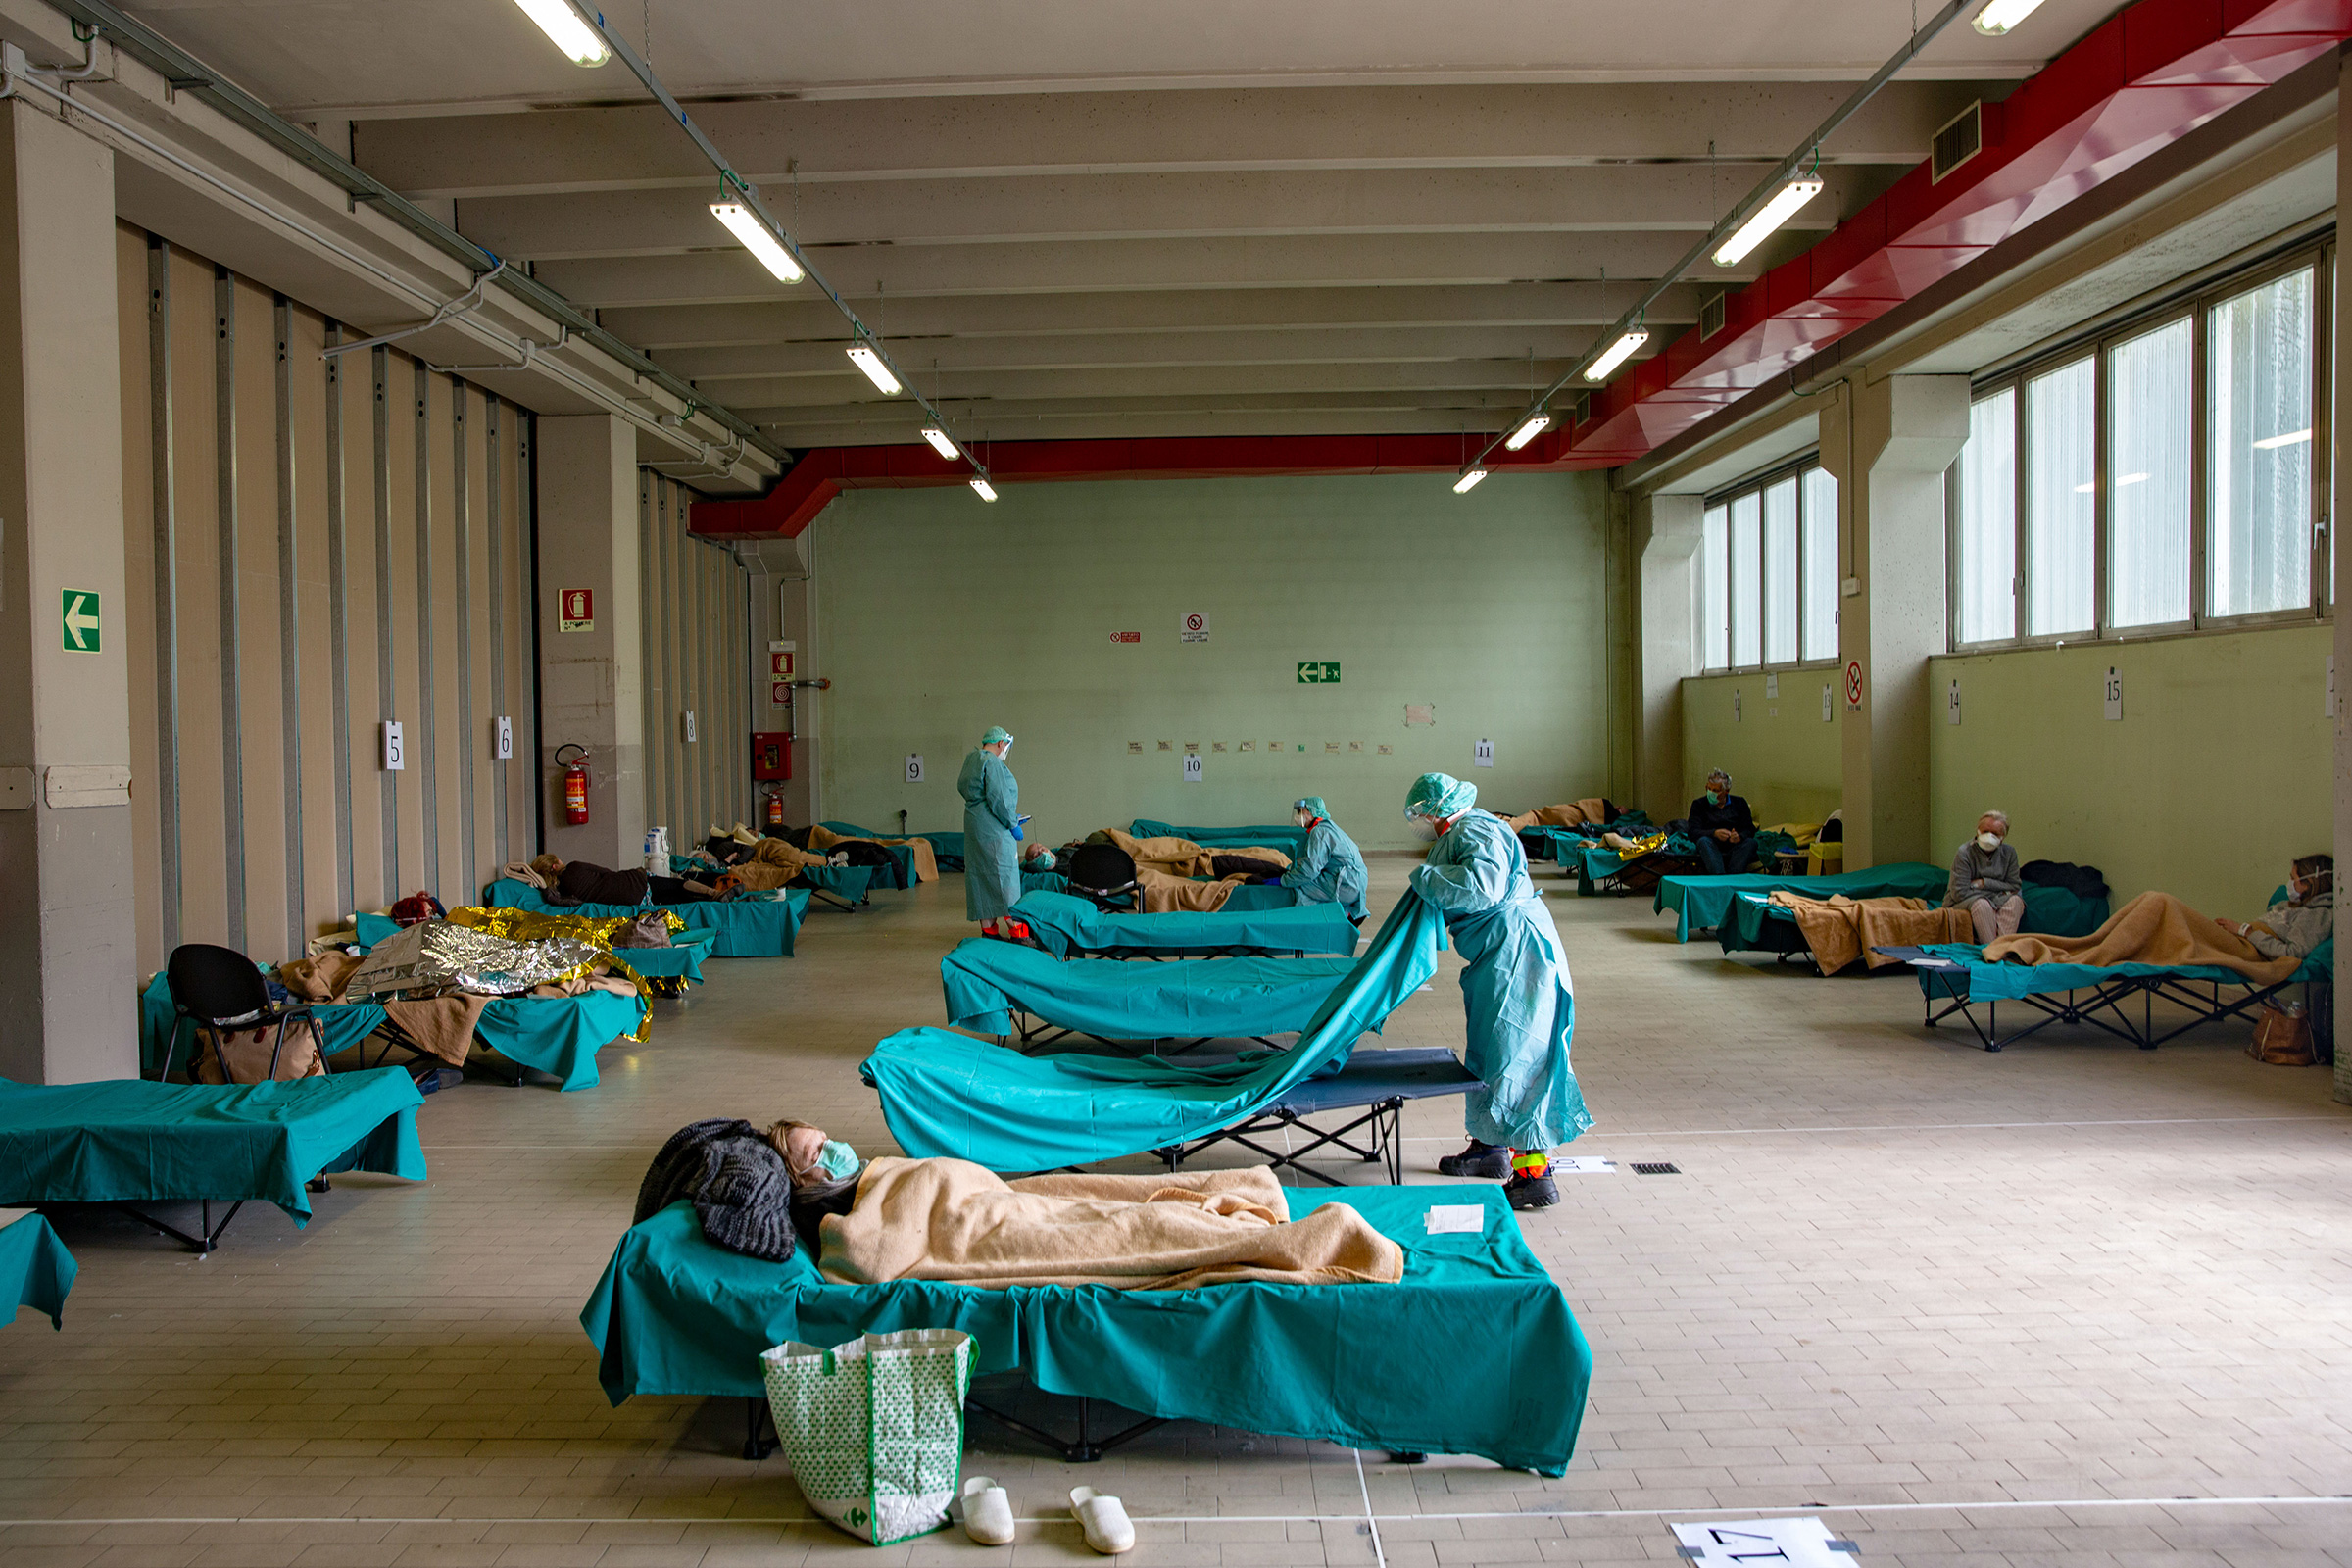 A temporary emergency room is set up in Brescia to alleviate strain on Italy's health care system, on March 13